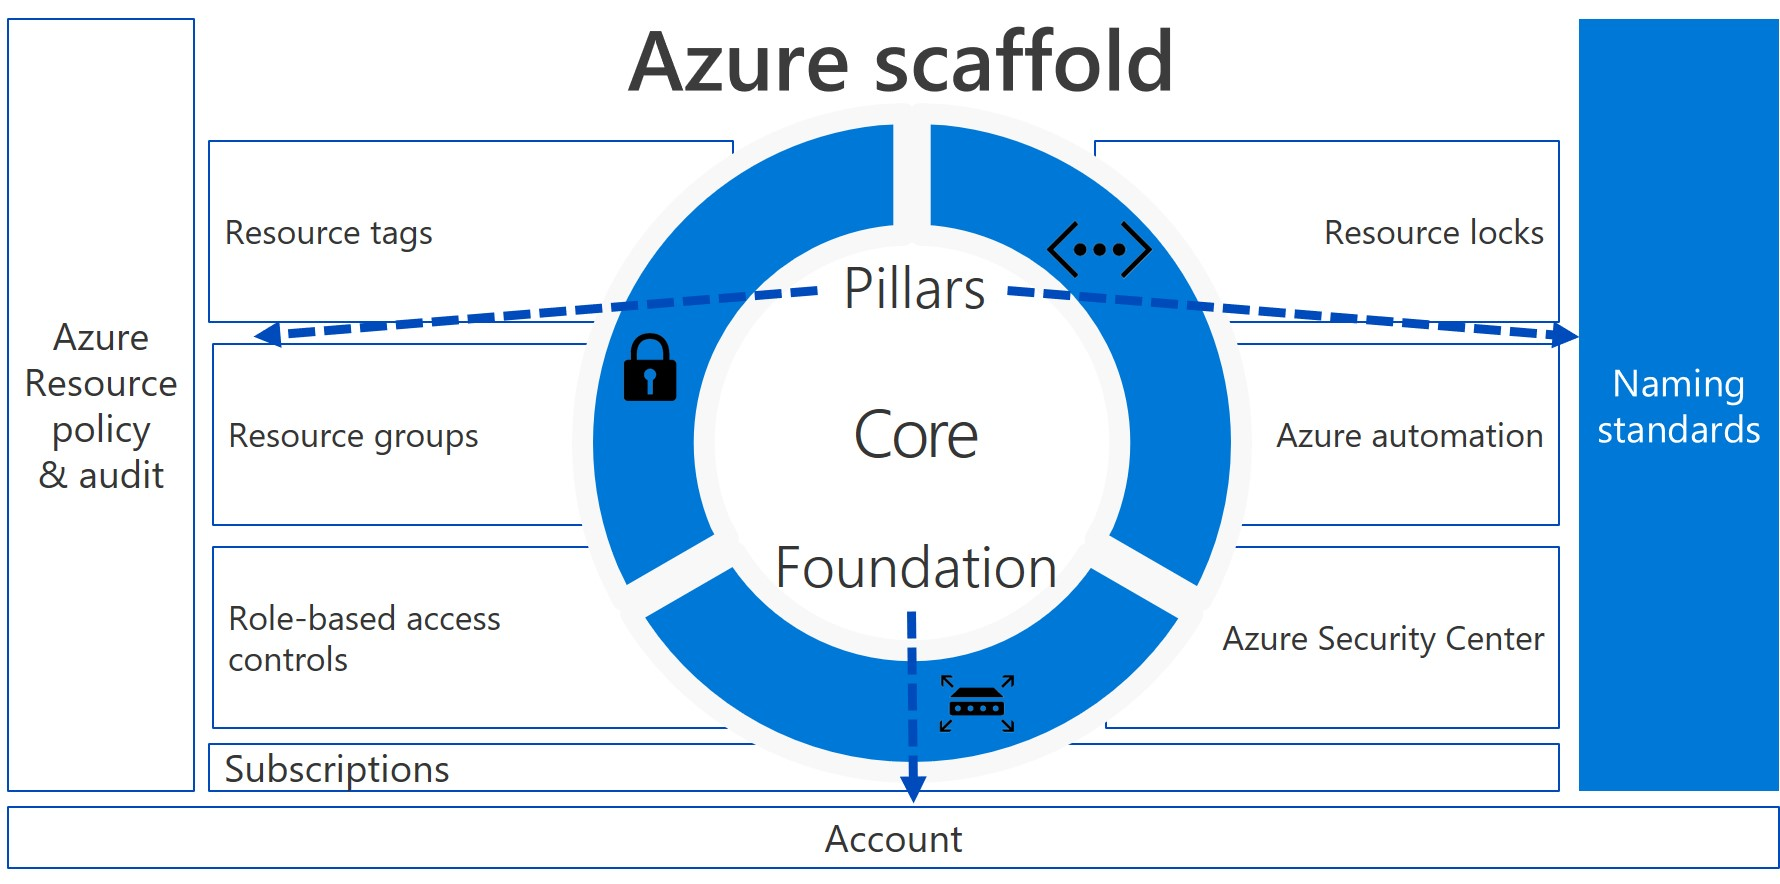 Azure Governance - Naming conventions